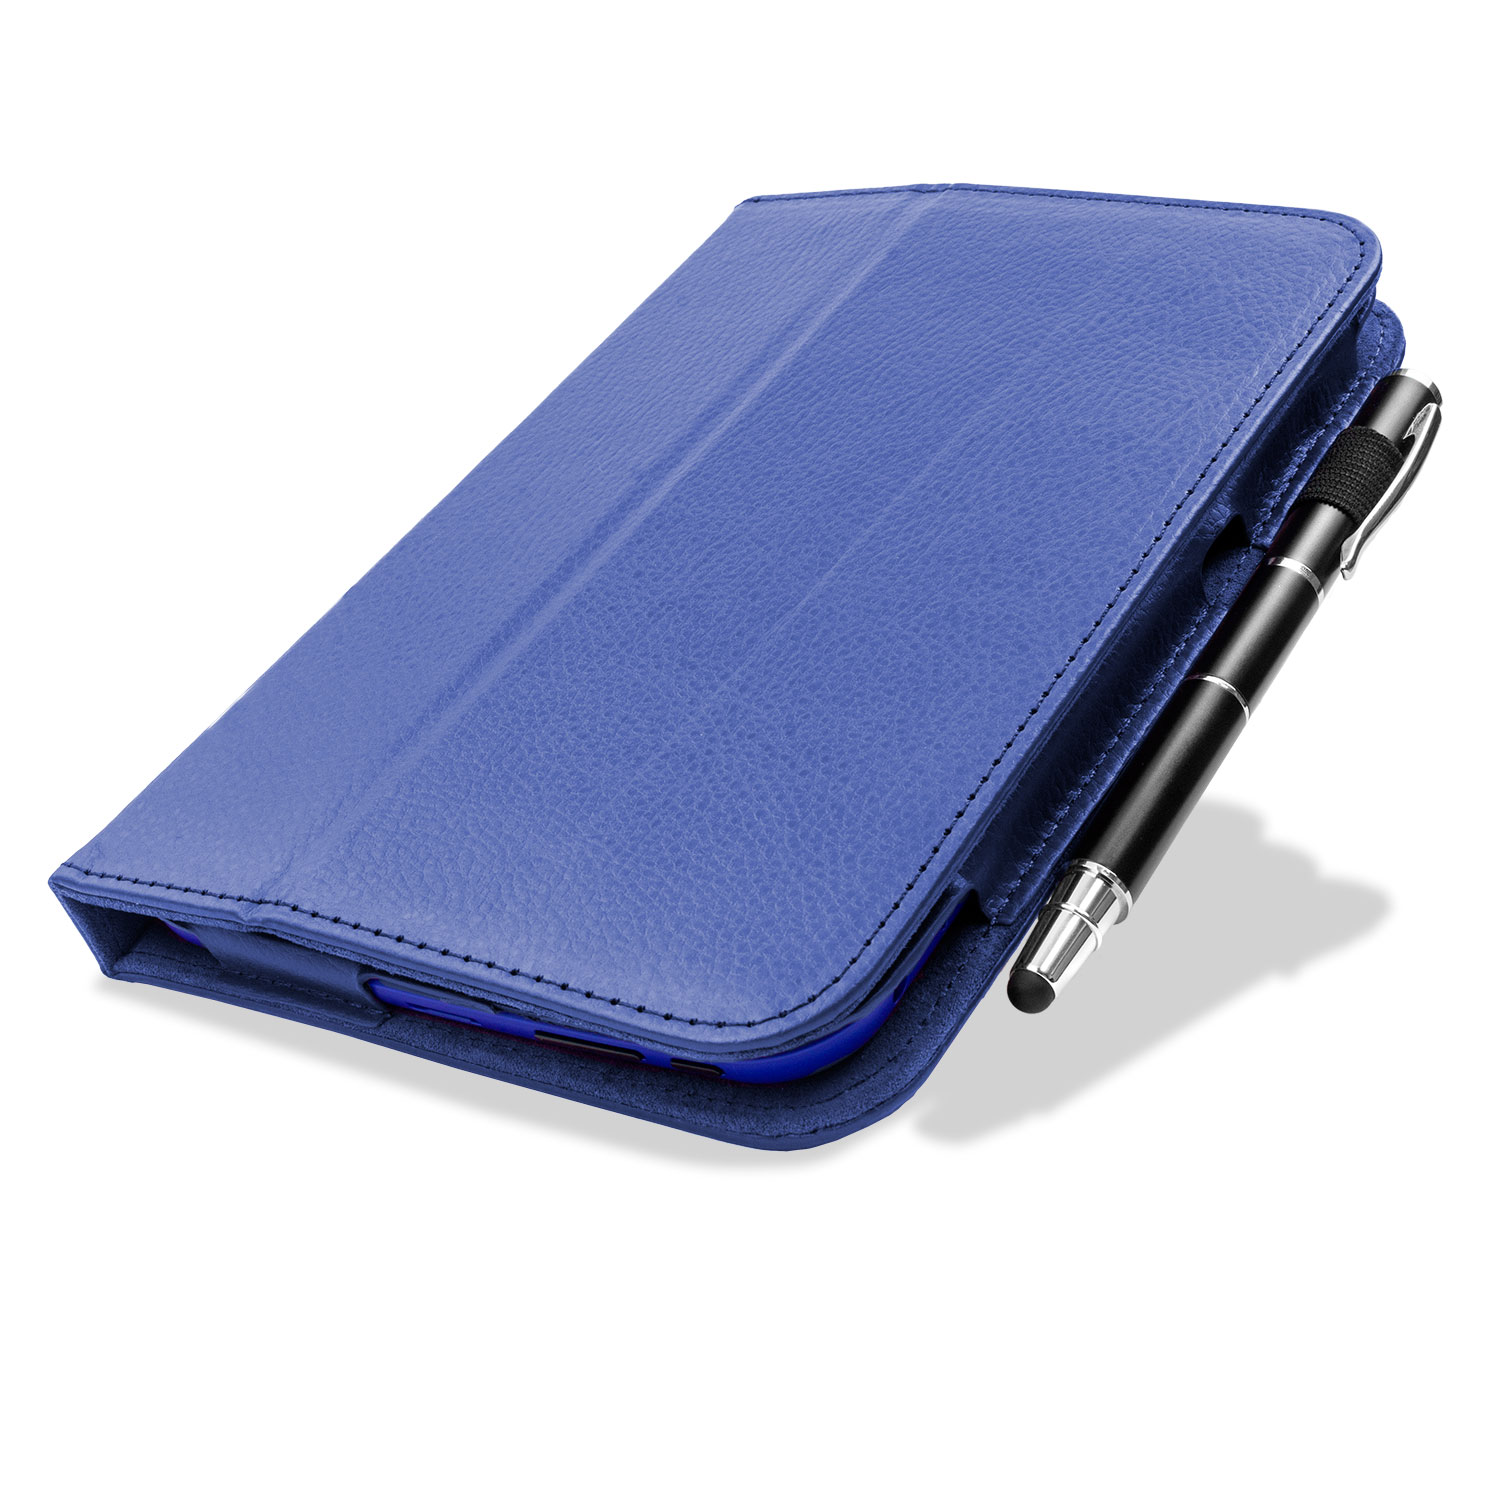 Folio stand leather case with hand grap for Tesco Hudl - Blue